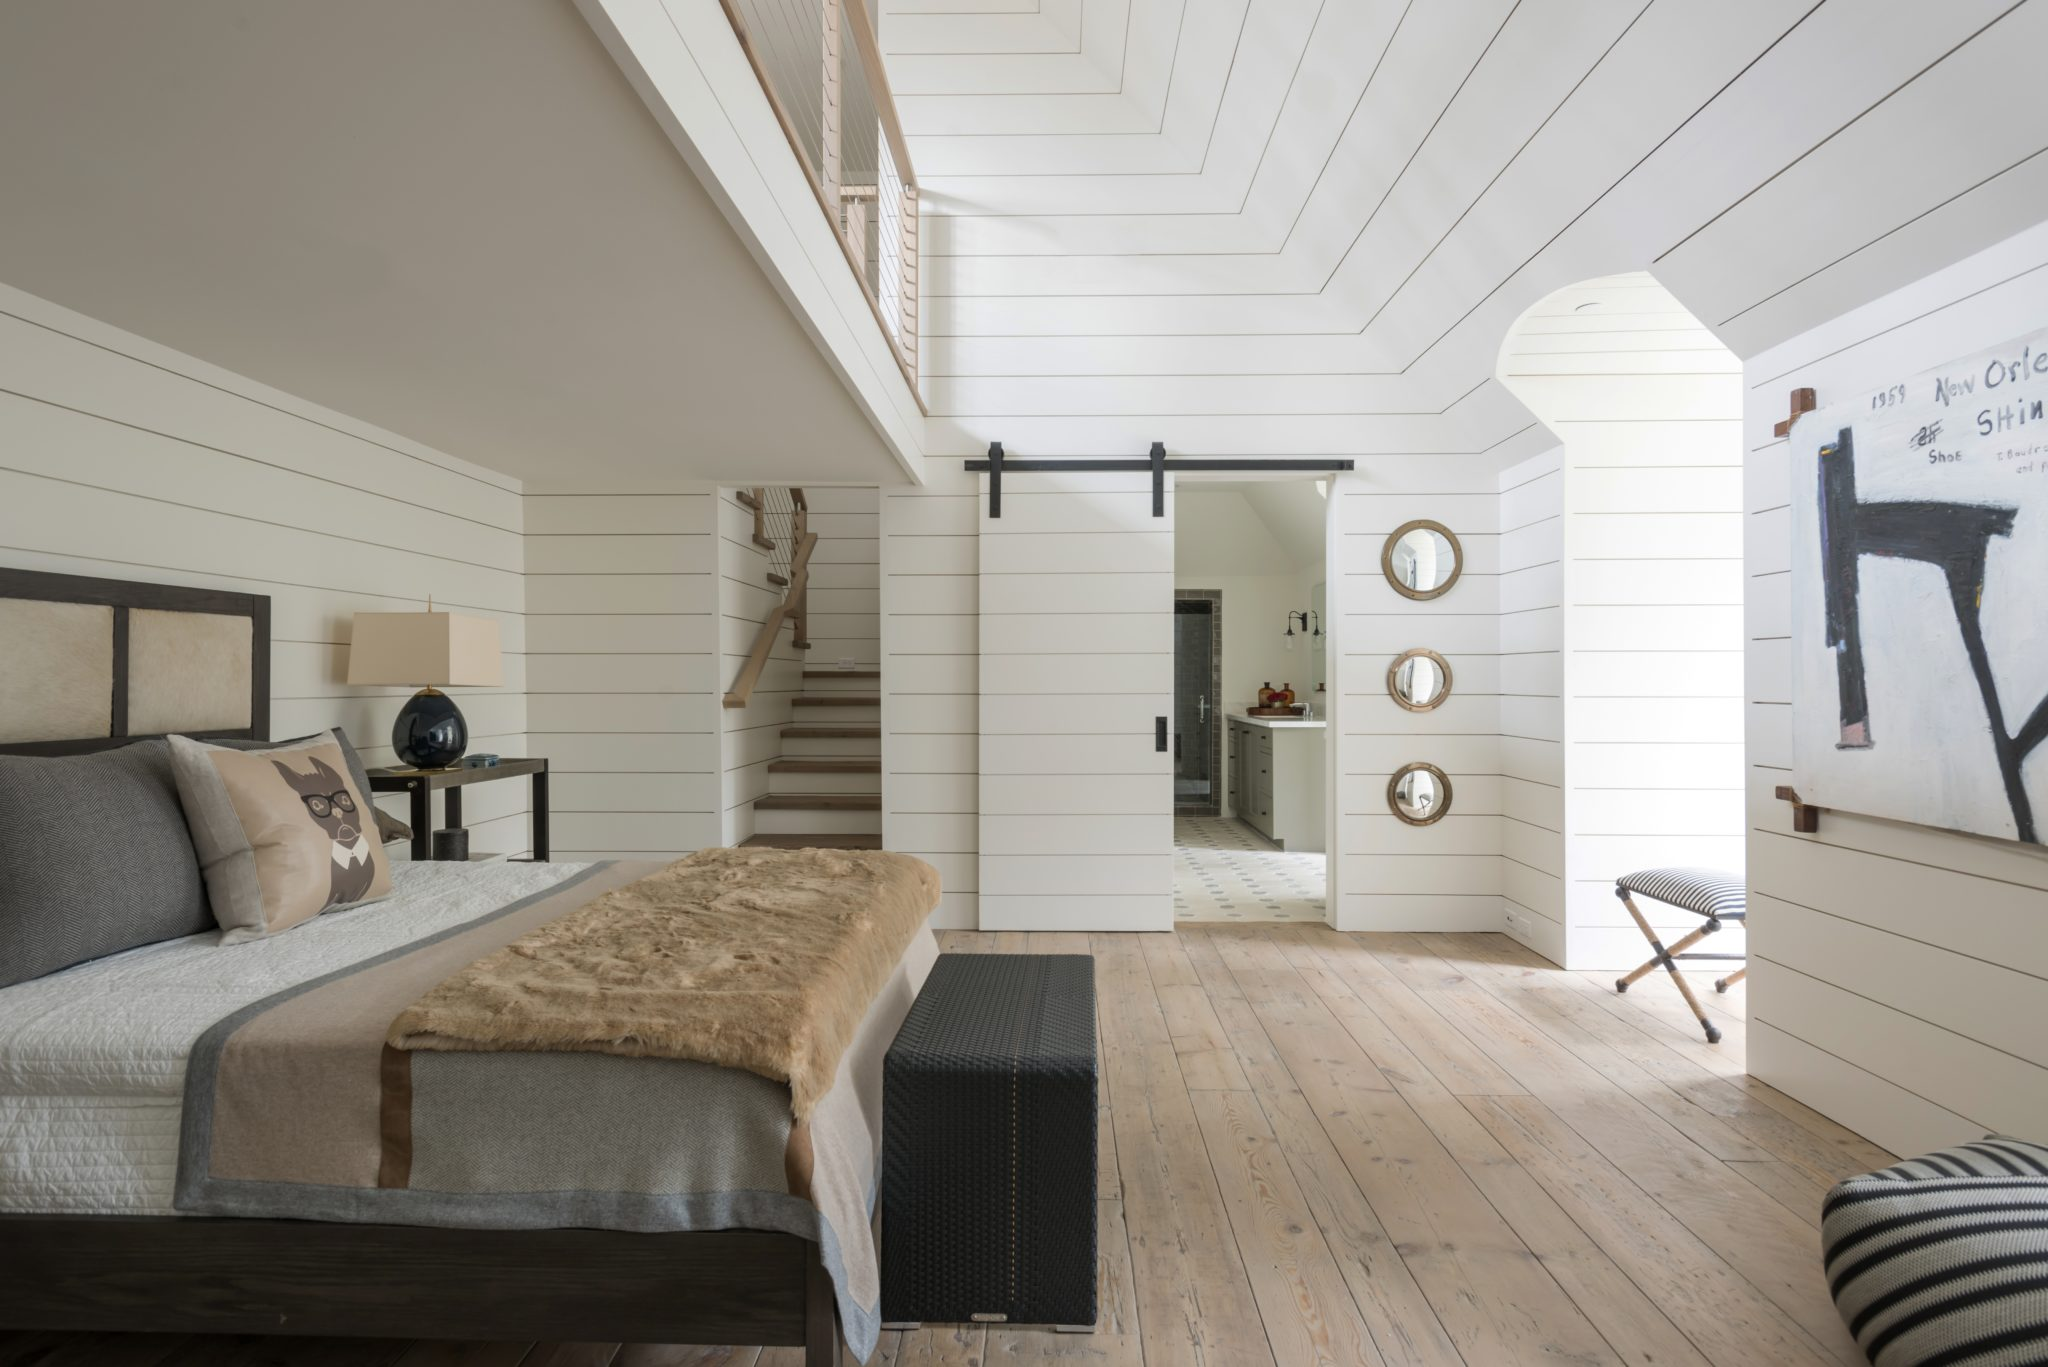 Playful teen bedroom with neutral furnishings & shiplap; Houston, TX by Bankston May Associates